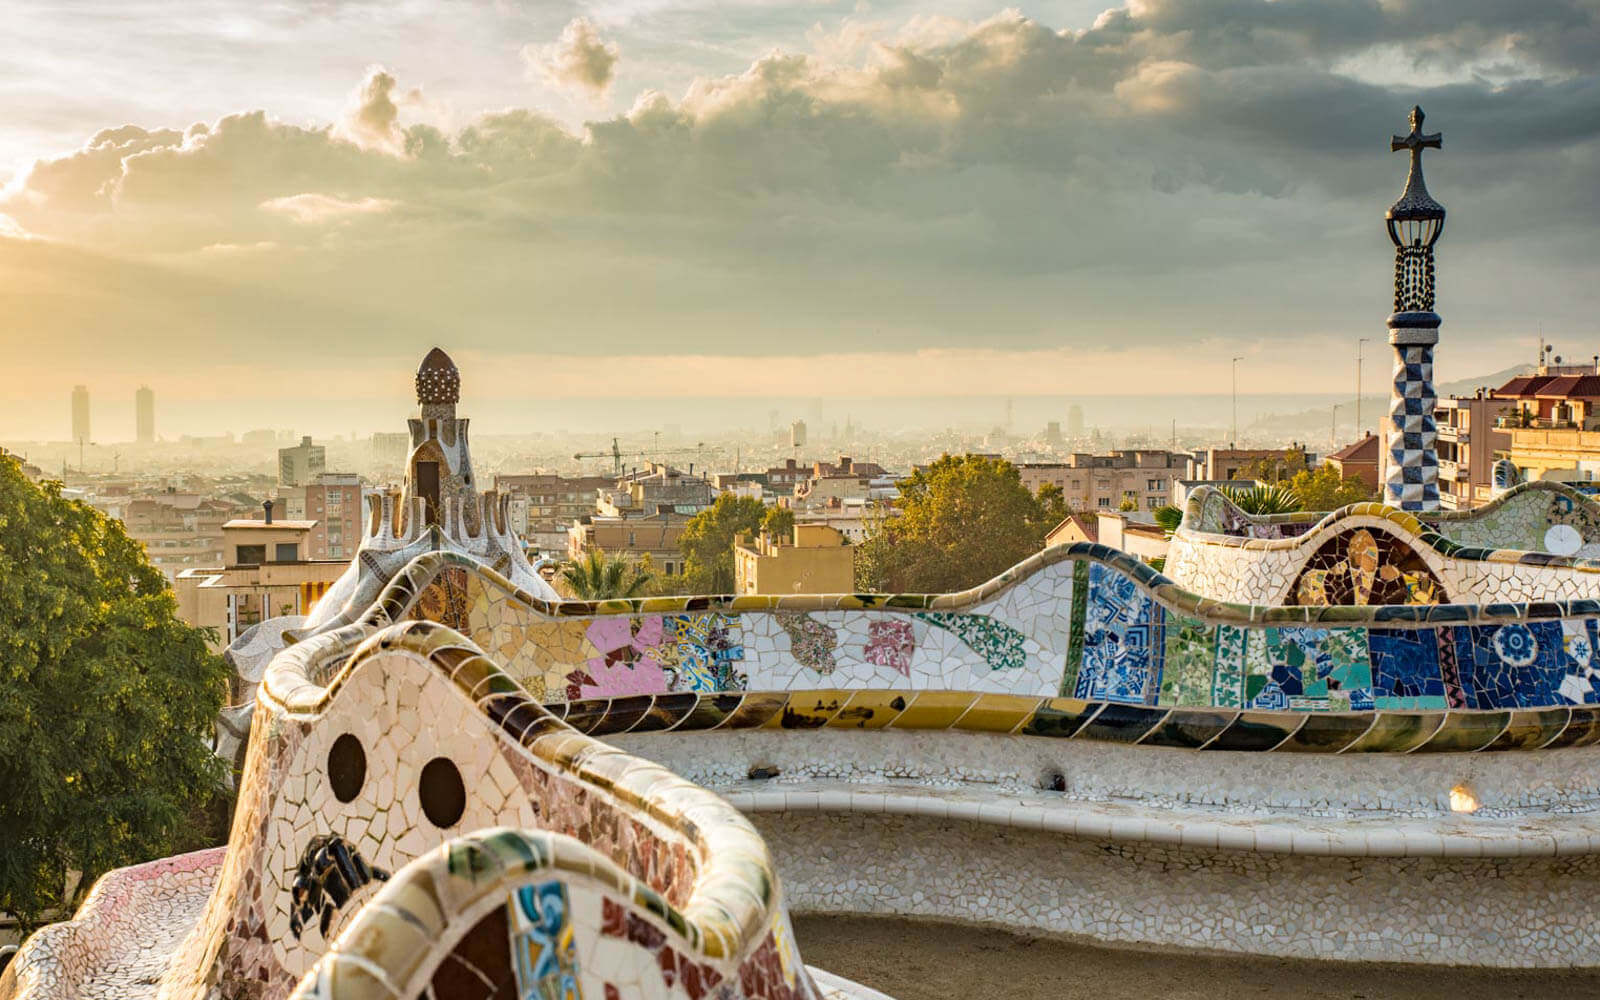 the view of the city and sea from the mosaic benches at park guell barcelona